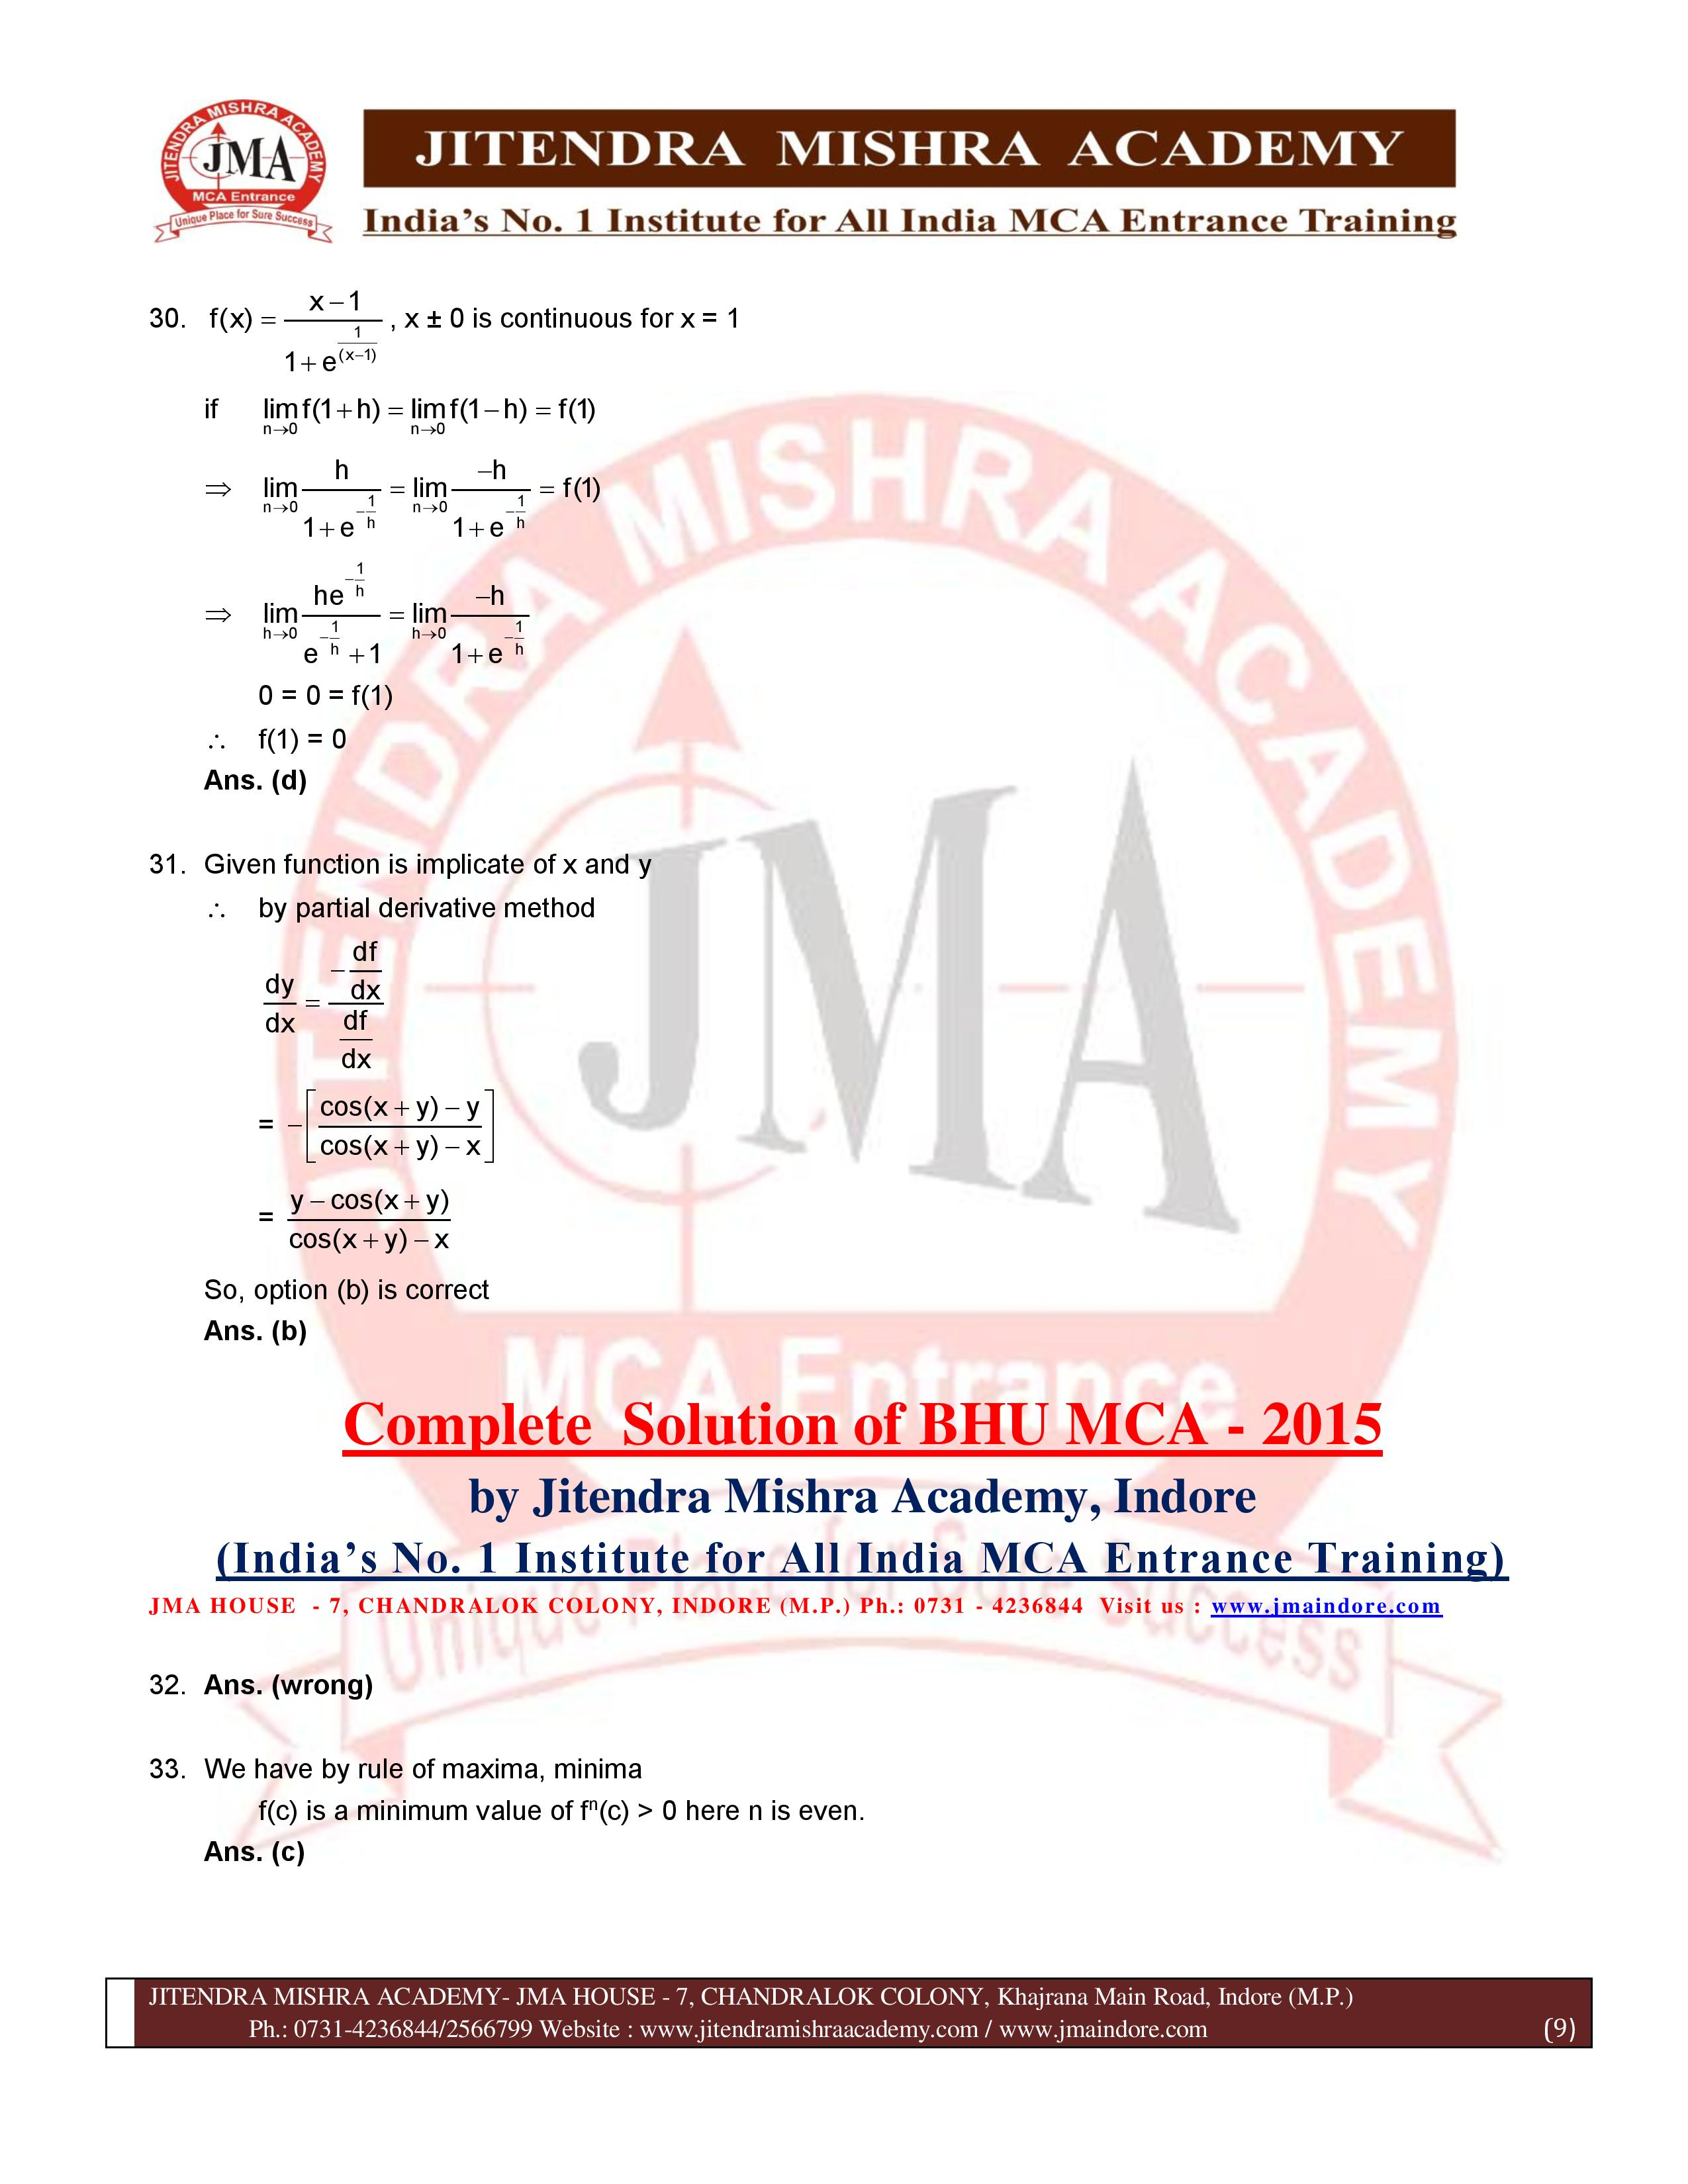 BHU 2015 SOLUTION (SET - 1) (29.06.16)-page-009